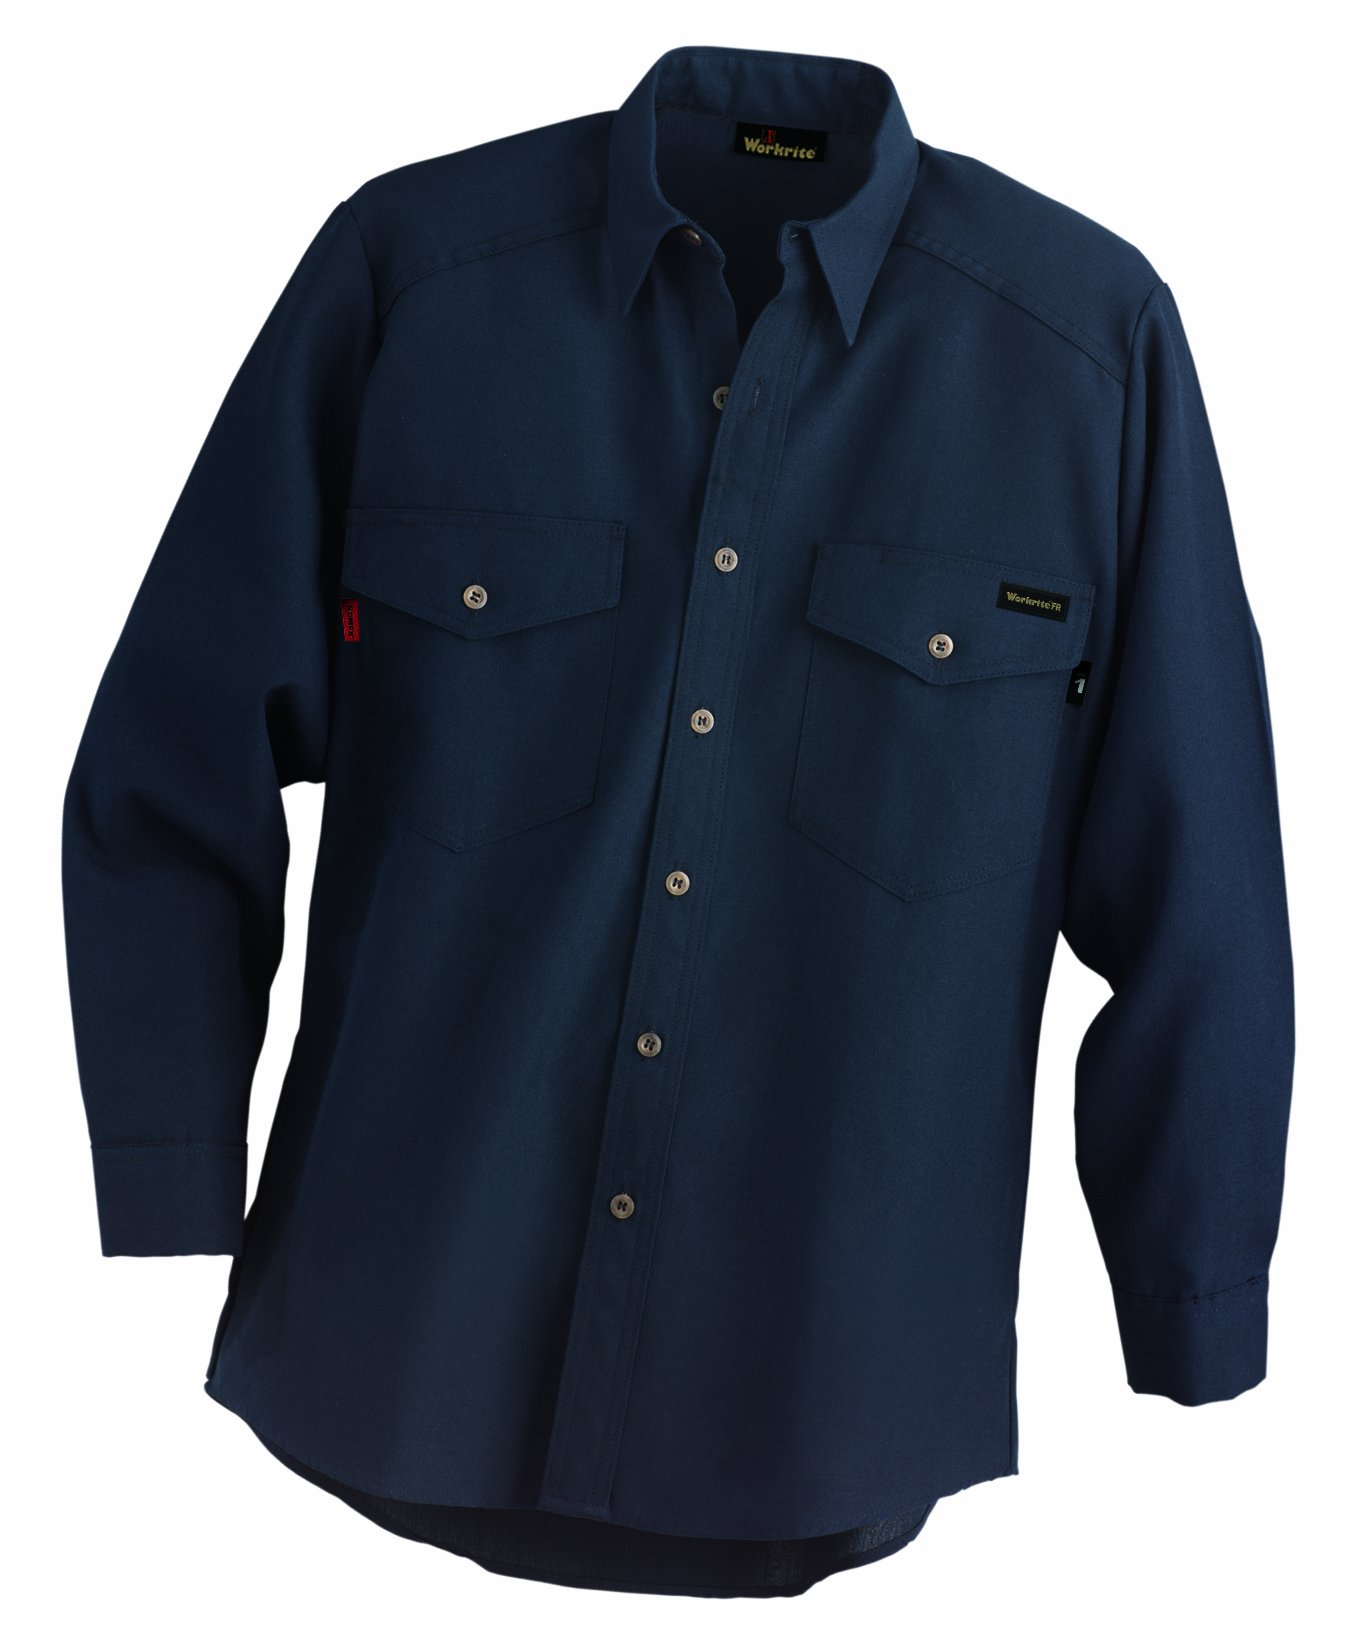 Workrite 290NX45NB40-0R Flame Resistant 4.5 oz Nomex IIIA Long Sleeve Utility Shirt, Button Cuff, 40 Chest Size, Regular Length, Navy Blue